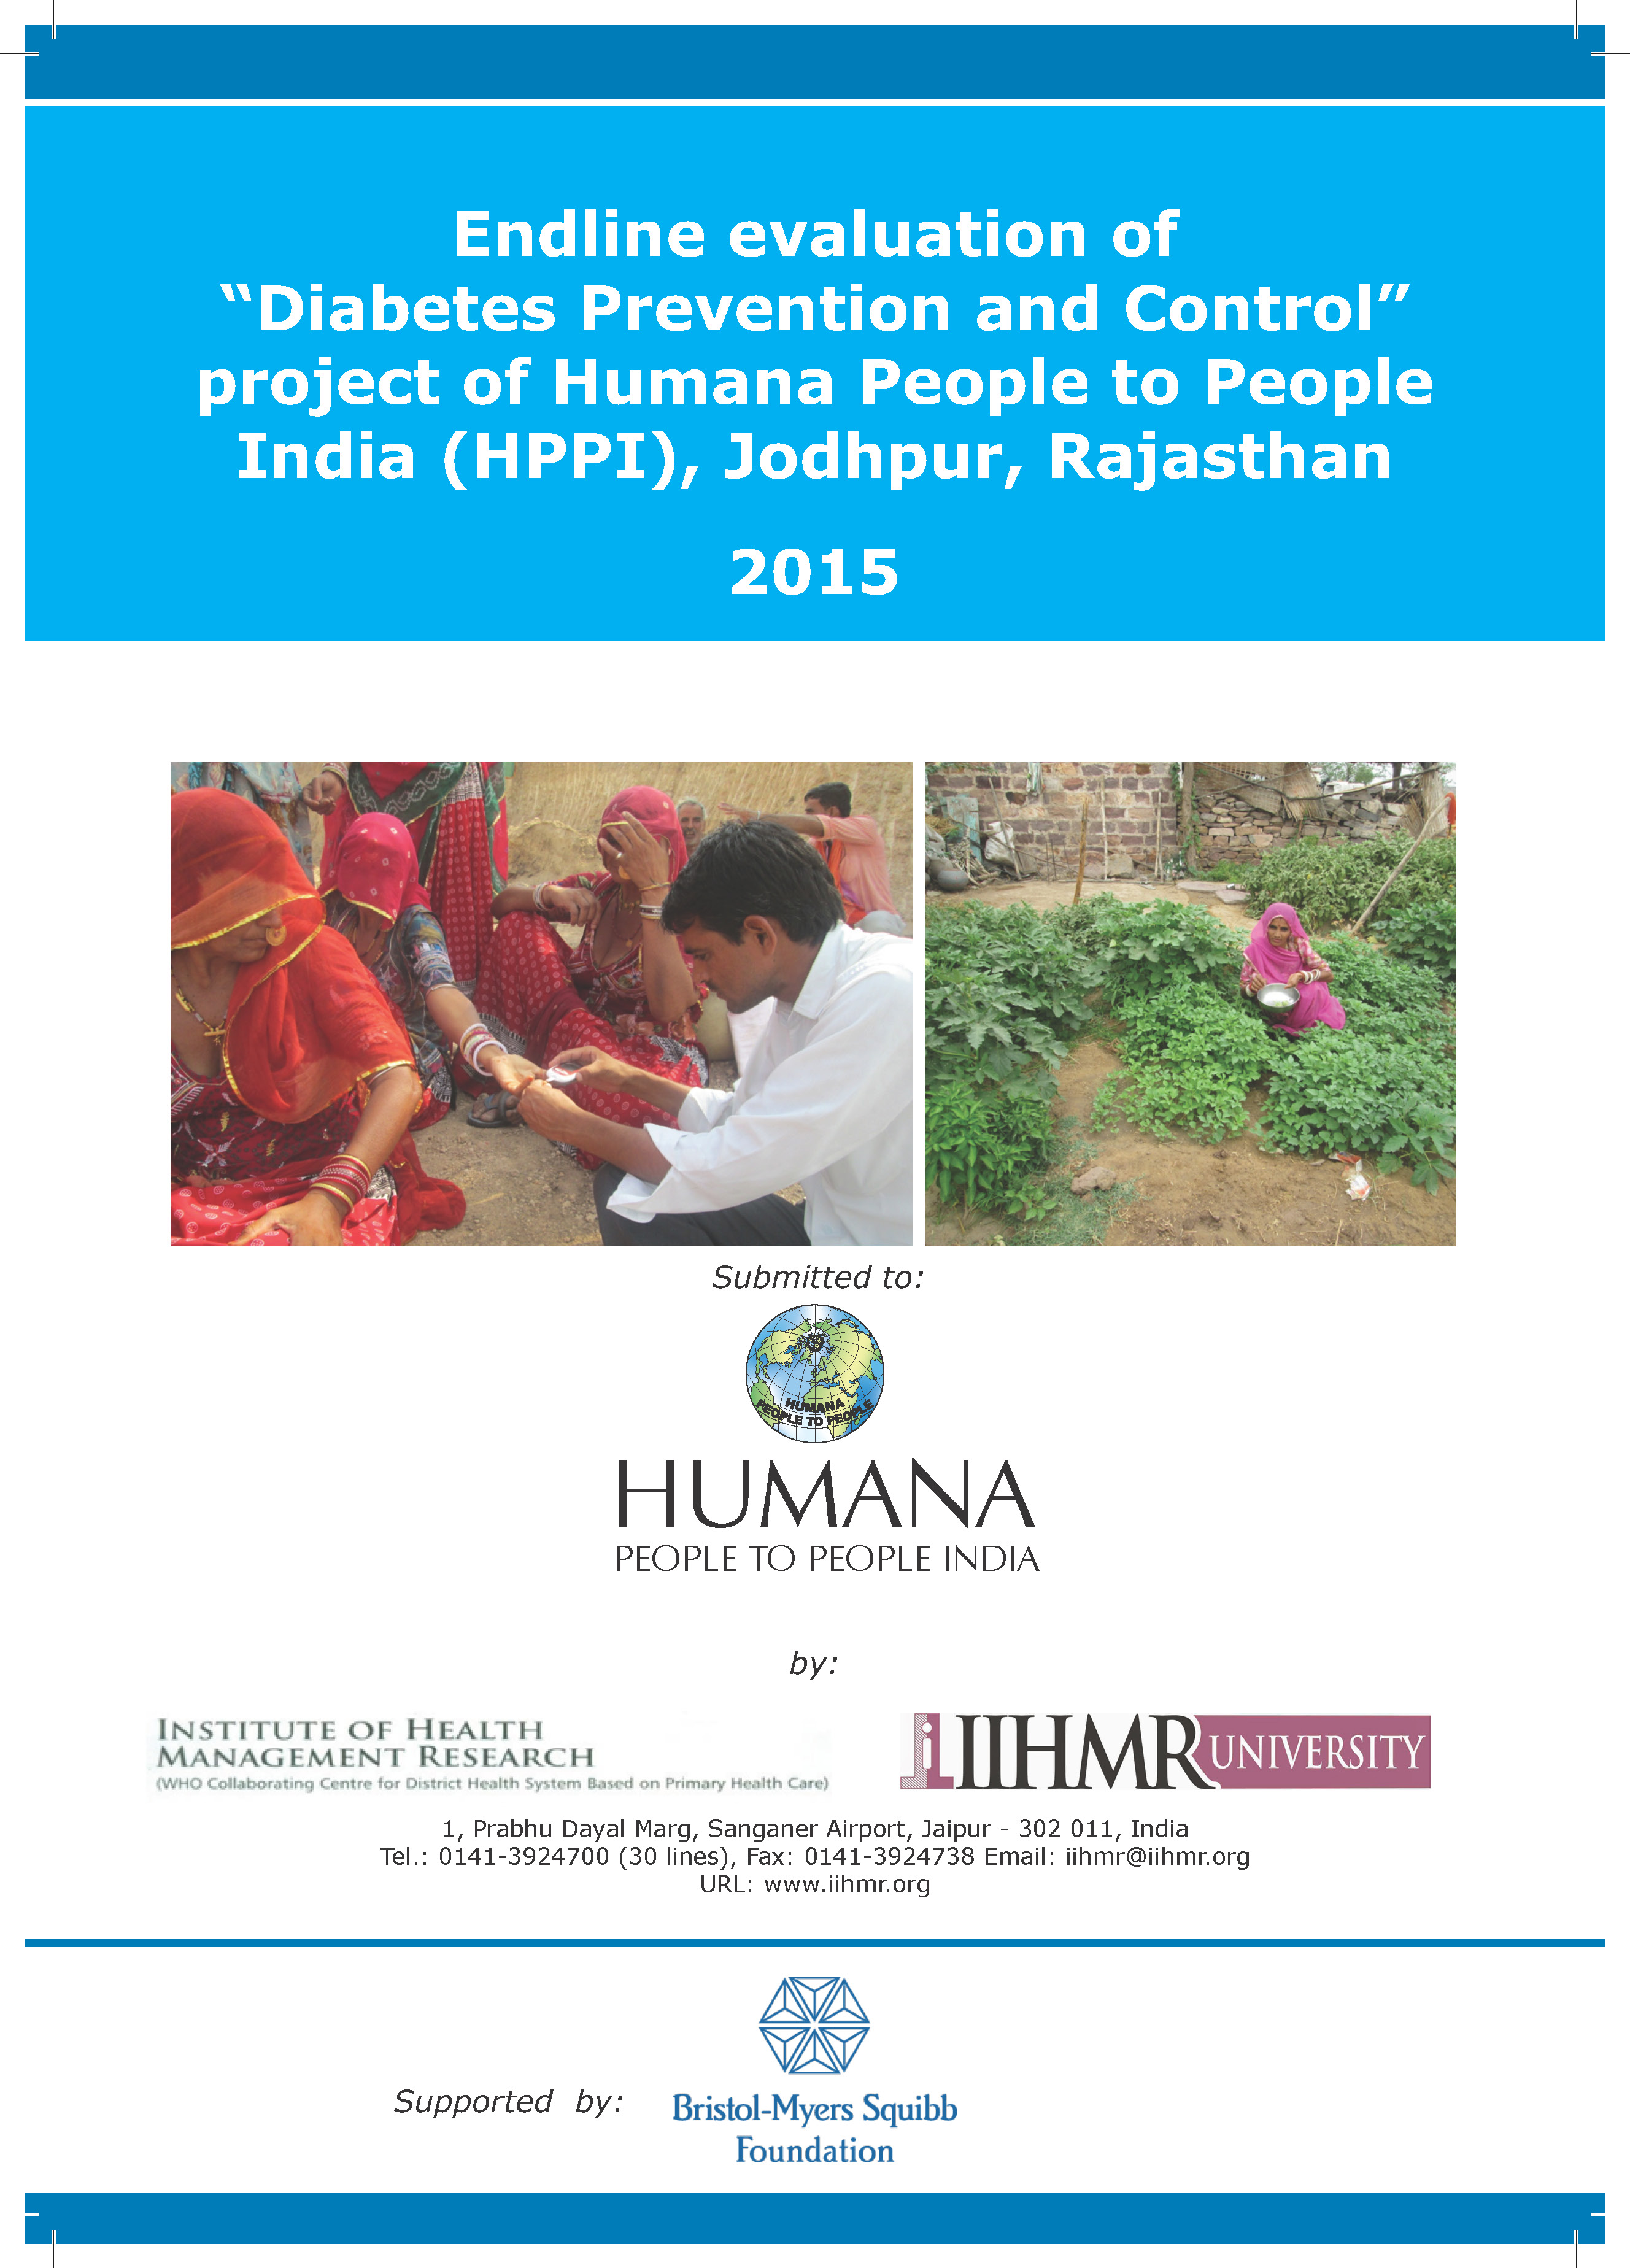 Endline-evaluation-of-Diabetes-Prevention-and-Control-project-of-Humana-People-to-People-India-HPPI-Jodhpur-Rajasthan